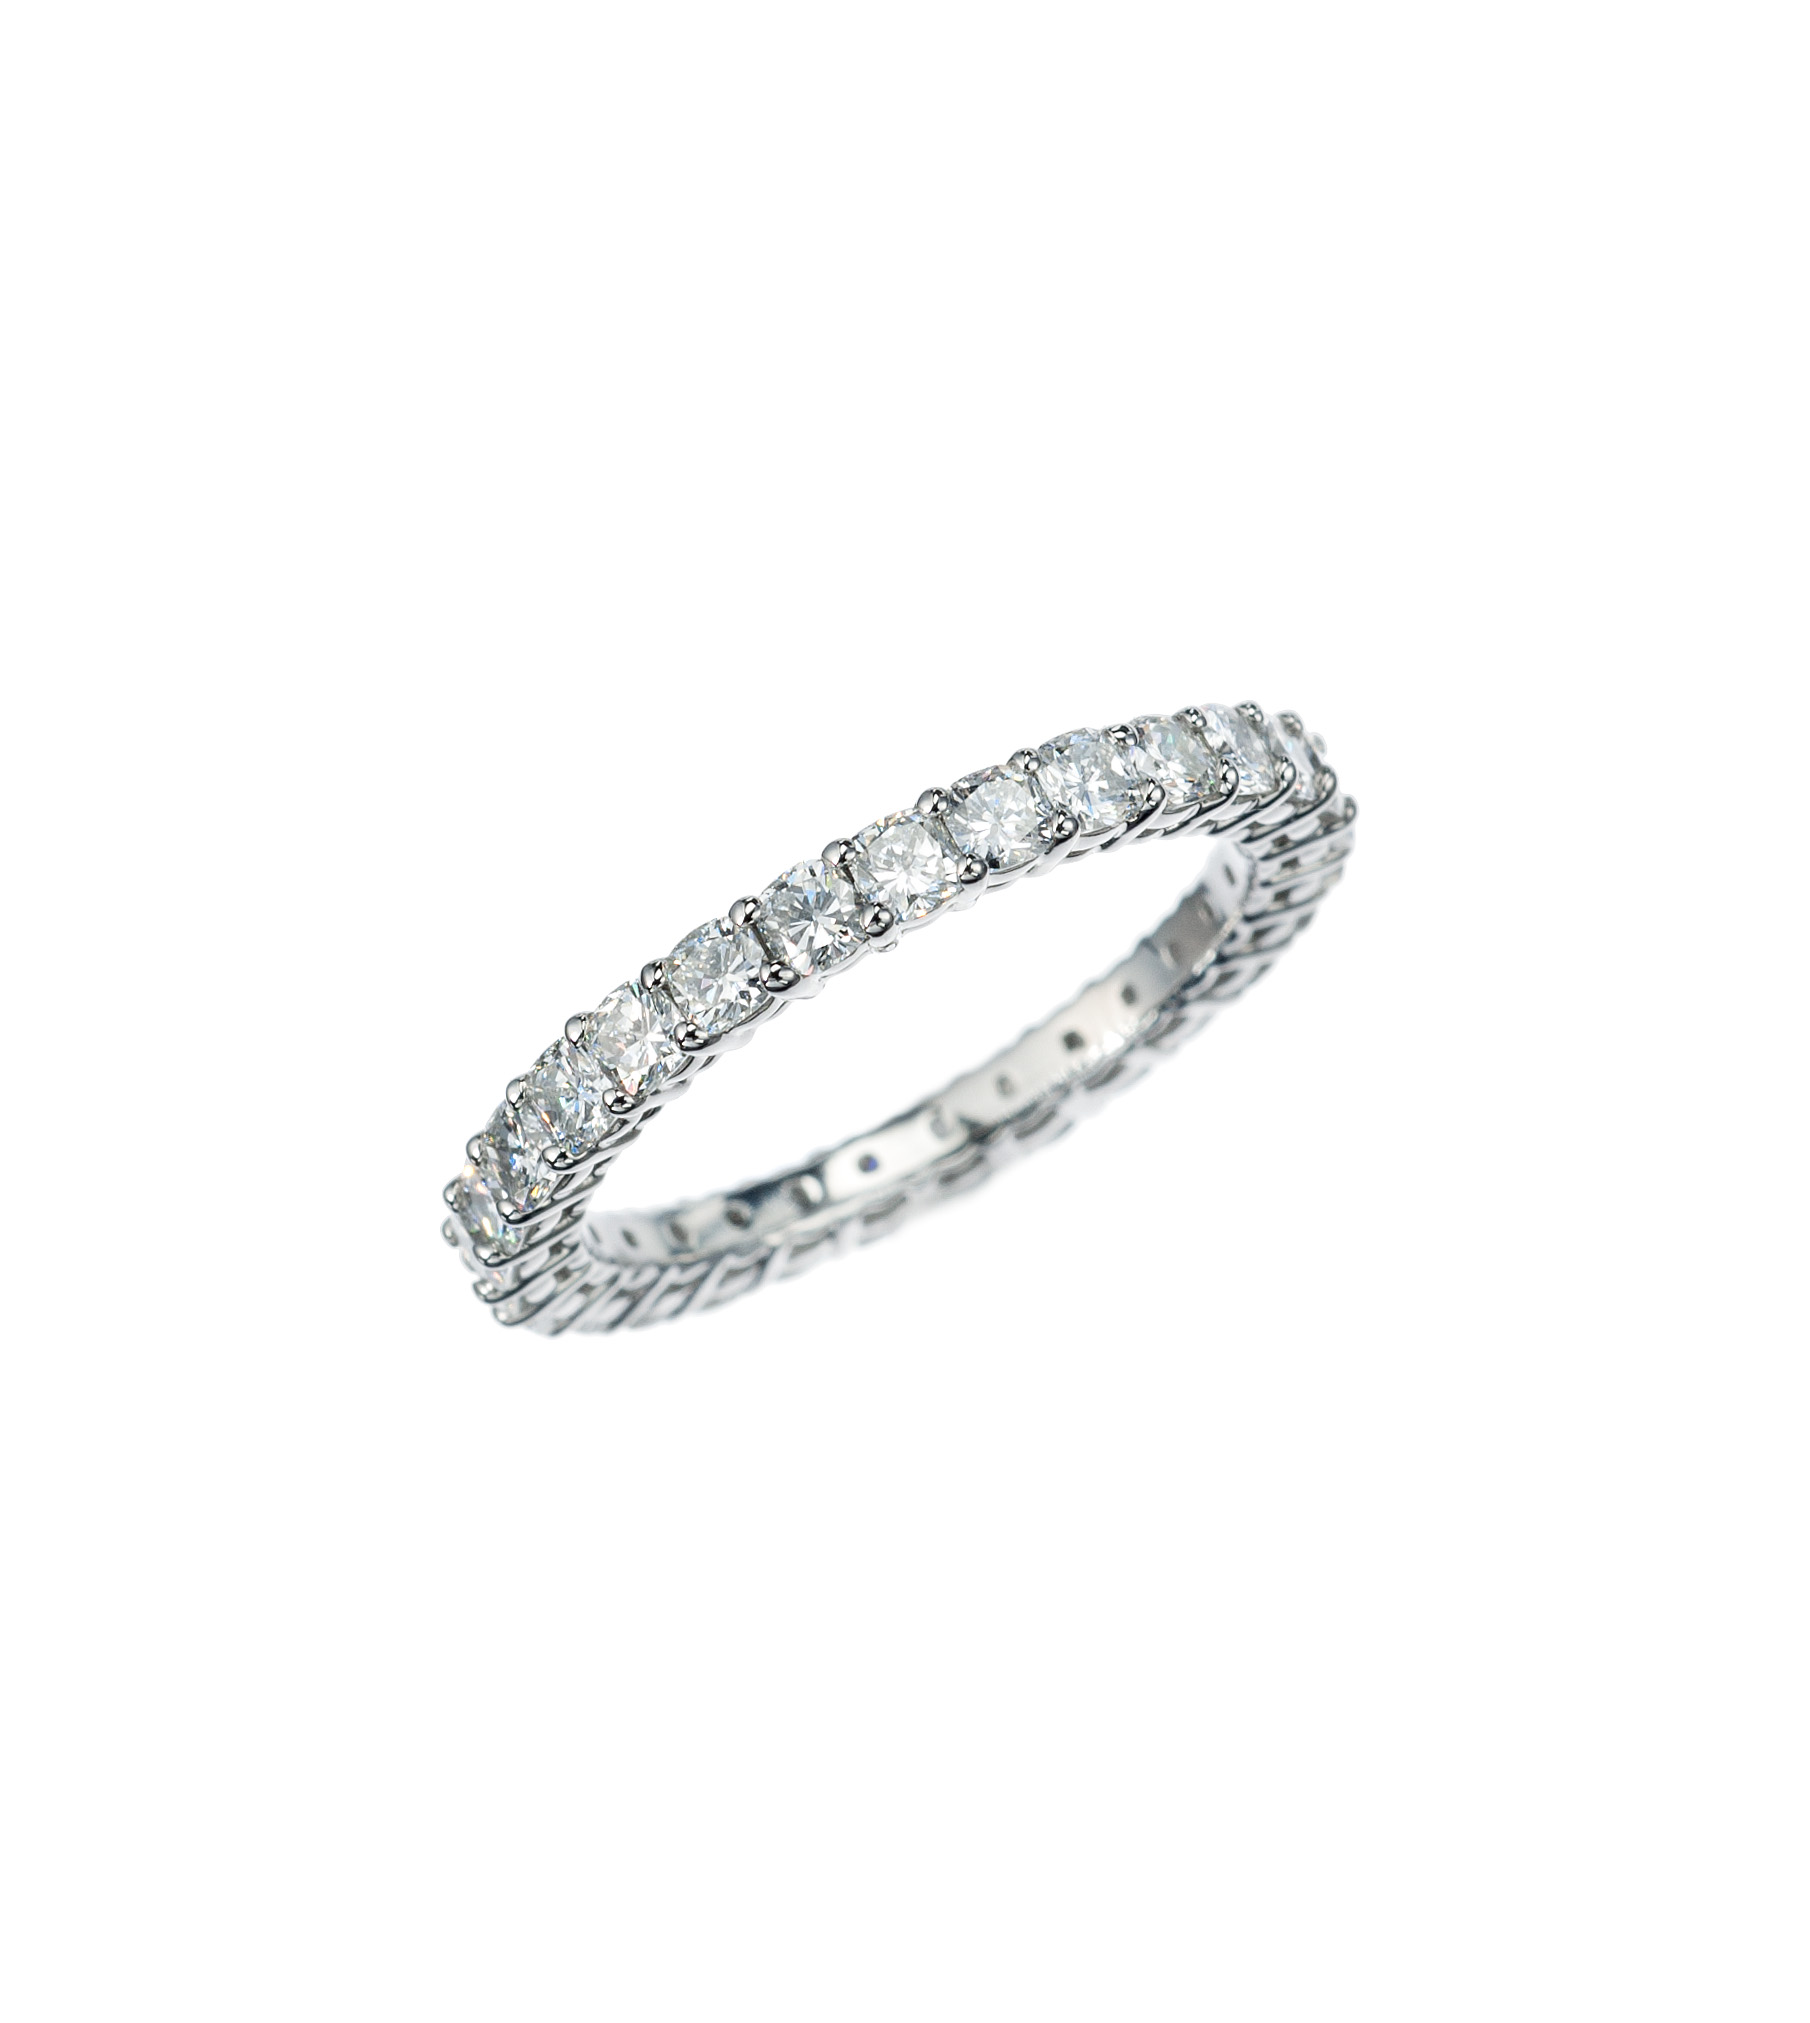 Cushion-cut diamond eternity band